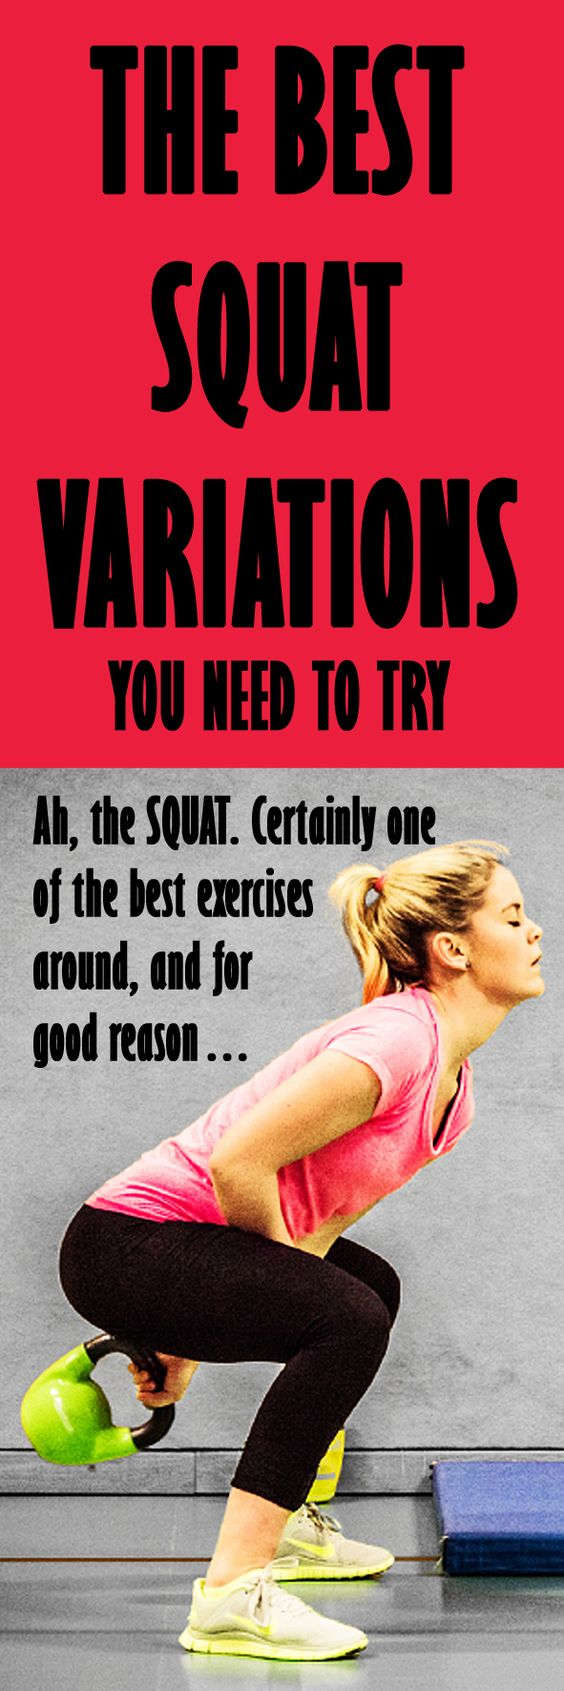 THE BEST SQUAT VARIATIONS you need to try: The squat is a great compound exercise to work your entire lower body and even your core and upper body. If you want to Add some extra fun into your full body workouts then try these awesome variations…  #squats #squatworkout #gluteworkout #squatvariation #buttworkout